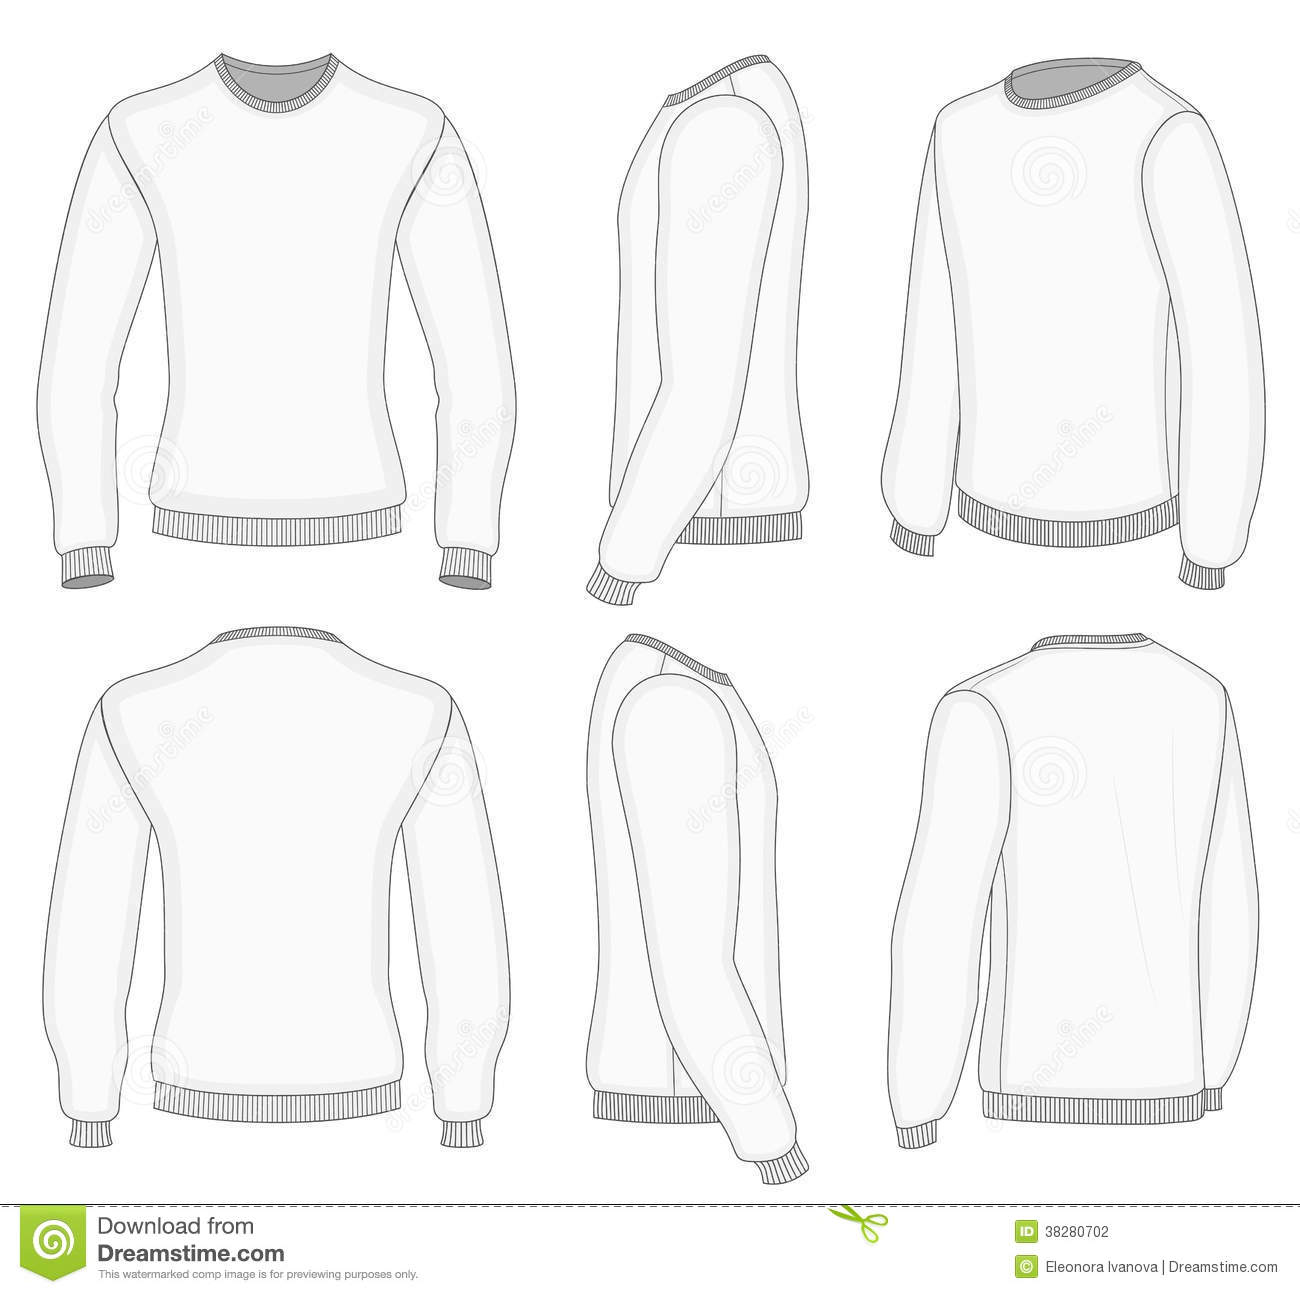 Free long sleeve t shirt vector template - We have Free long sleeve t shirt vector template Free Downloads in Ai, EPS, SVG, CDR formats. grunge t-shirt design, grunge t-shirt design, t shirt.